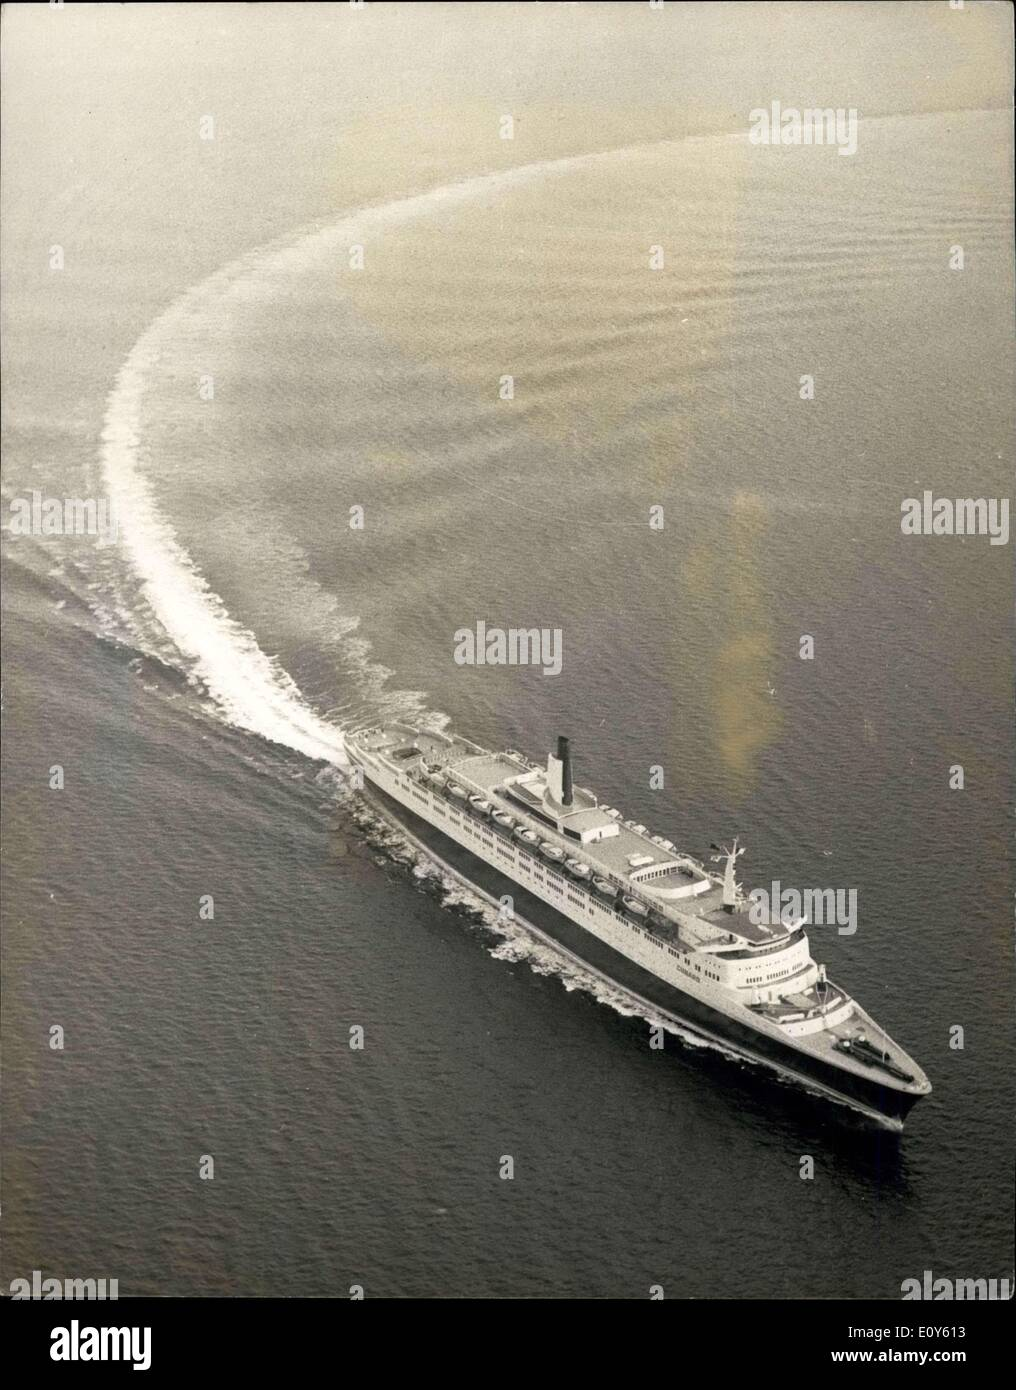 Nov. 30, 1968 - Oil Leak Cuts Short QE2 Sea Trials - The Traials of the Cunardor Queen Elizabeth 2,65,000 tons, were interrupted yesterday because-oil had sceped into the water system in the boiler room. The ship returned from trials in the Firth of Clyde to her anchorage at Tail-of the-Bank and will re-enter the dry dook at Greenock Division of apper Clyde Shipbuilders, who is aboard the shipobservring the trails, said that the ship had undergone ''Satisfaction trails'' in perfect condions, she had carried cut fast working-up speeds but had not gone Full Ahead'' Over a Moasured Mile - Stock Image